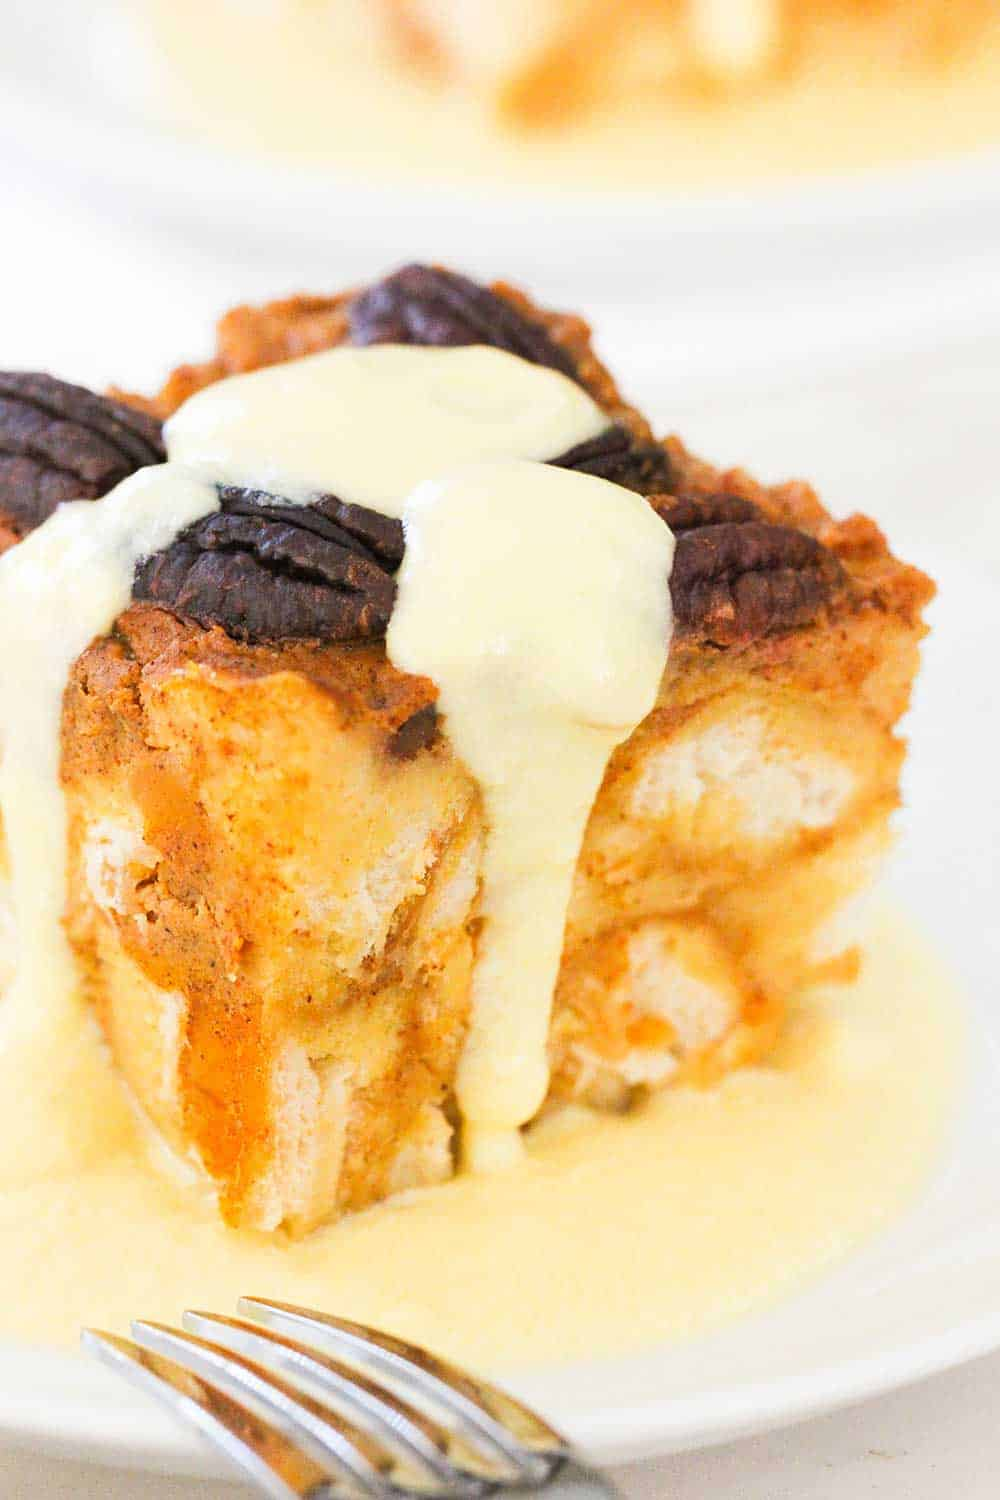 A plate of pressure cooker pumpkin bread pudding with vanilla custard sauce drizzled on top.